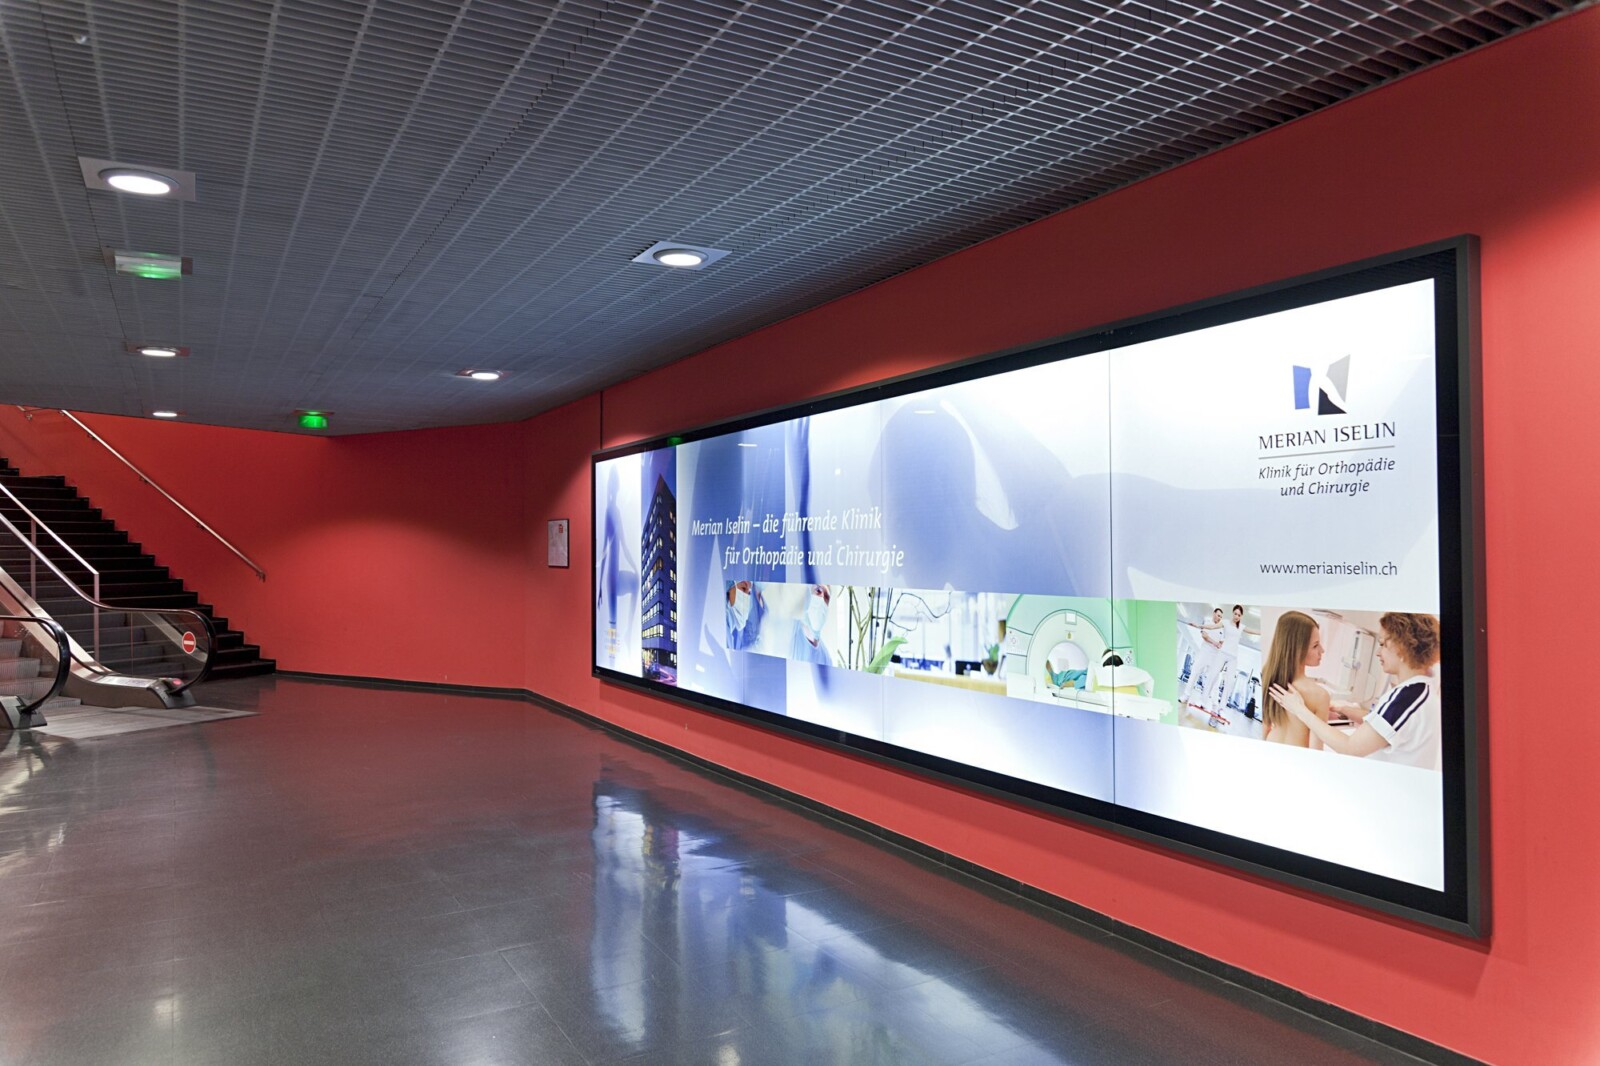 Advertising at the airport - EuroAiport Basel - Posters classic and digital - How your advertising works in the transit area - Ideal for branding, brand image and brand awareness